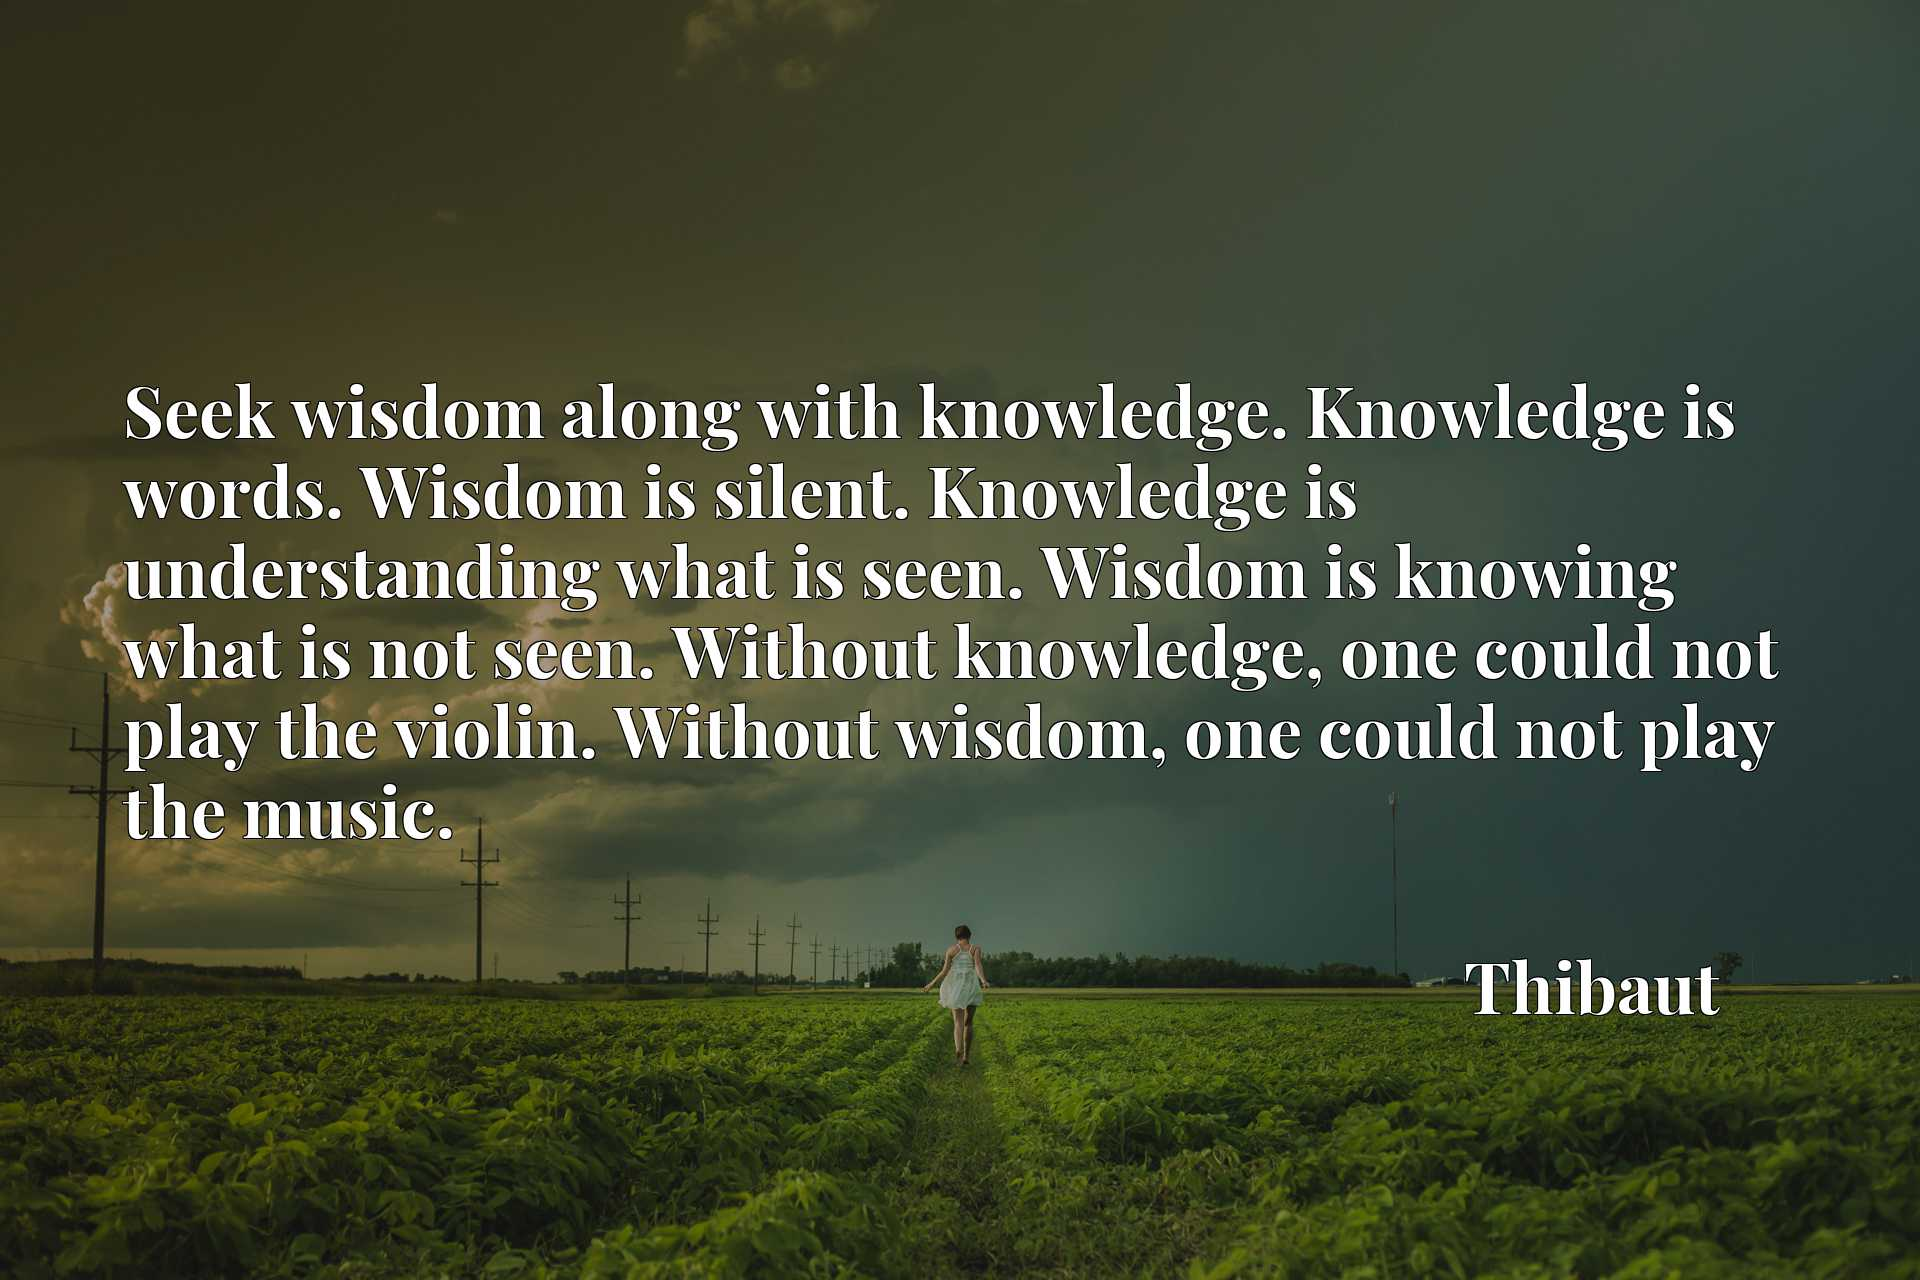 Seek wisdom along with knowledge. Knowledge is words. Wisdom is silent. Knowledge is understanding what is seen. Wisdom is knowing what is not seen. Without knowledge, one could not play the violin. Without wisdom, one could not play the music.